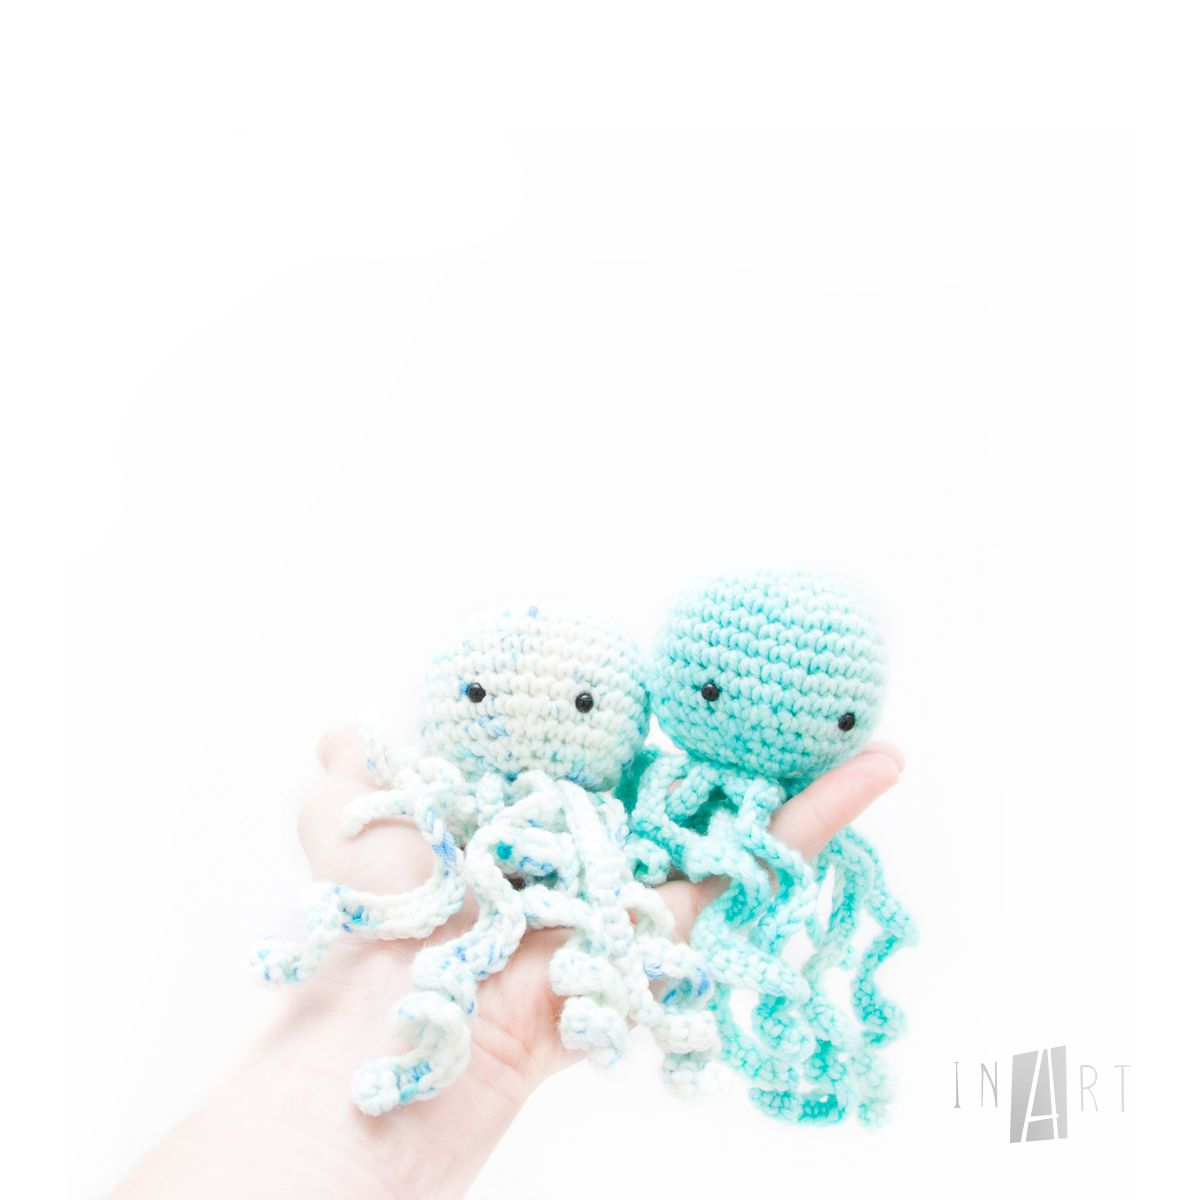 Free Crochet Jelly Fish Pattern by Ina Rho (InArt) | Easy crochet ...